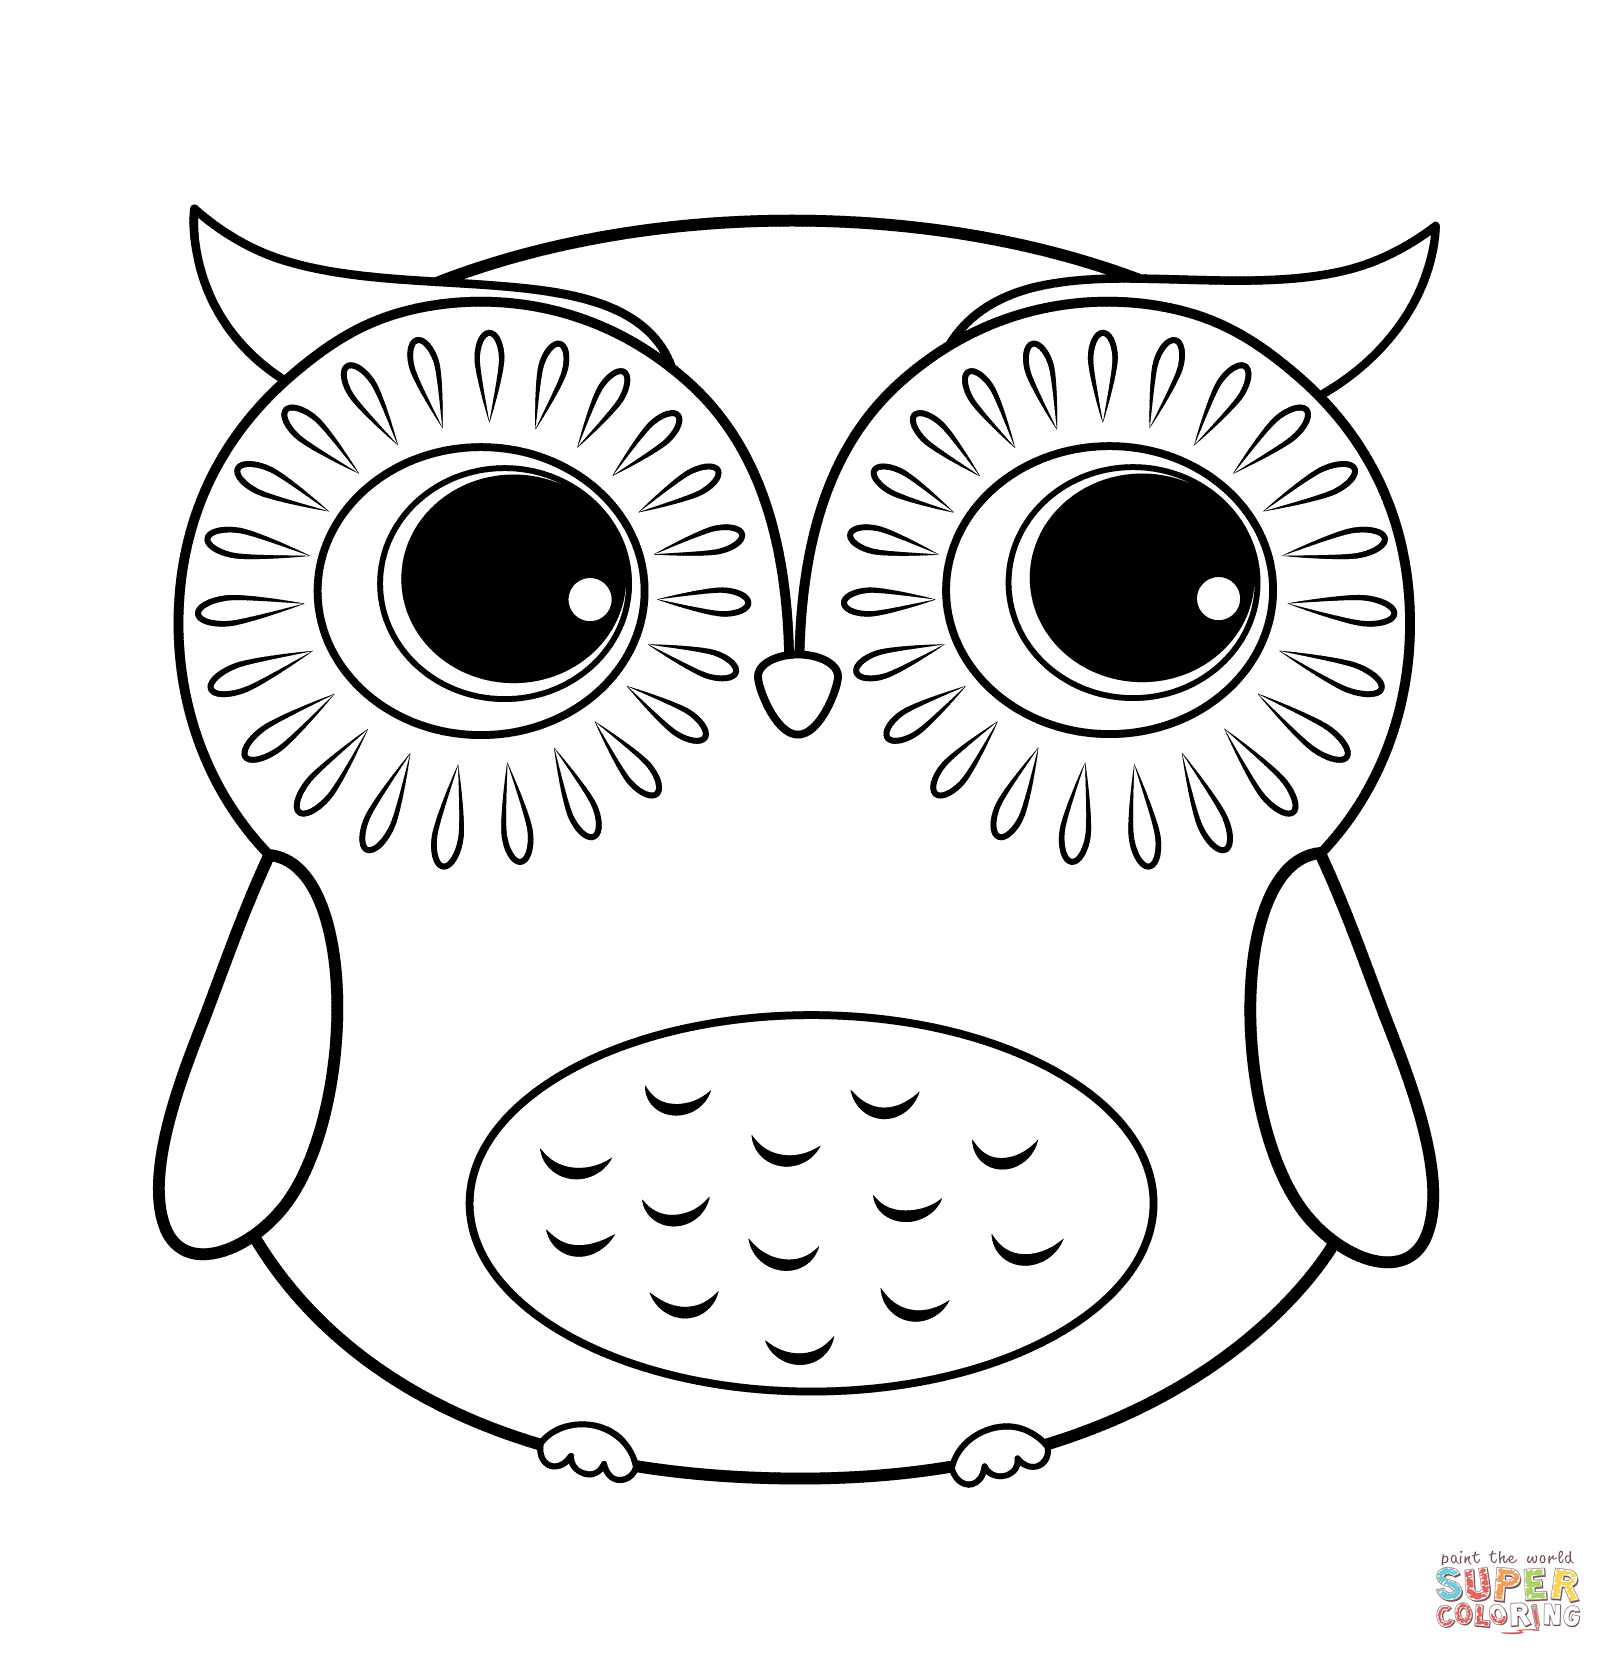 cute owl coloring pictures cartoon owl coloring pages clipart best cute owl pictures owl cute coloring